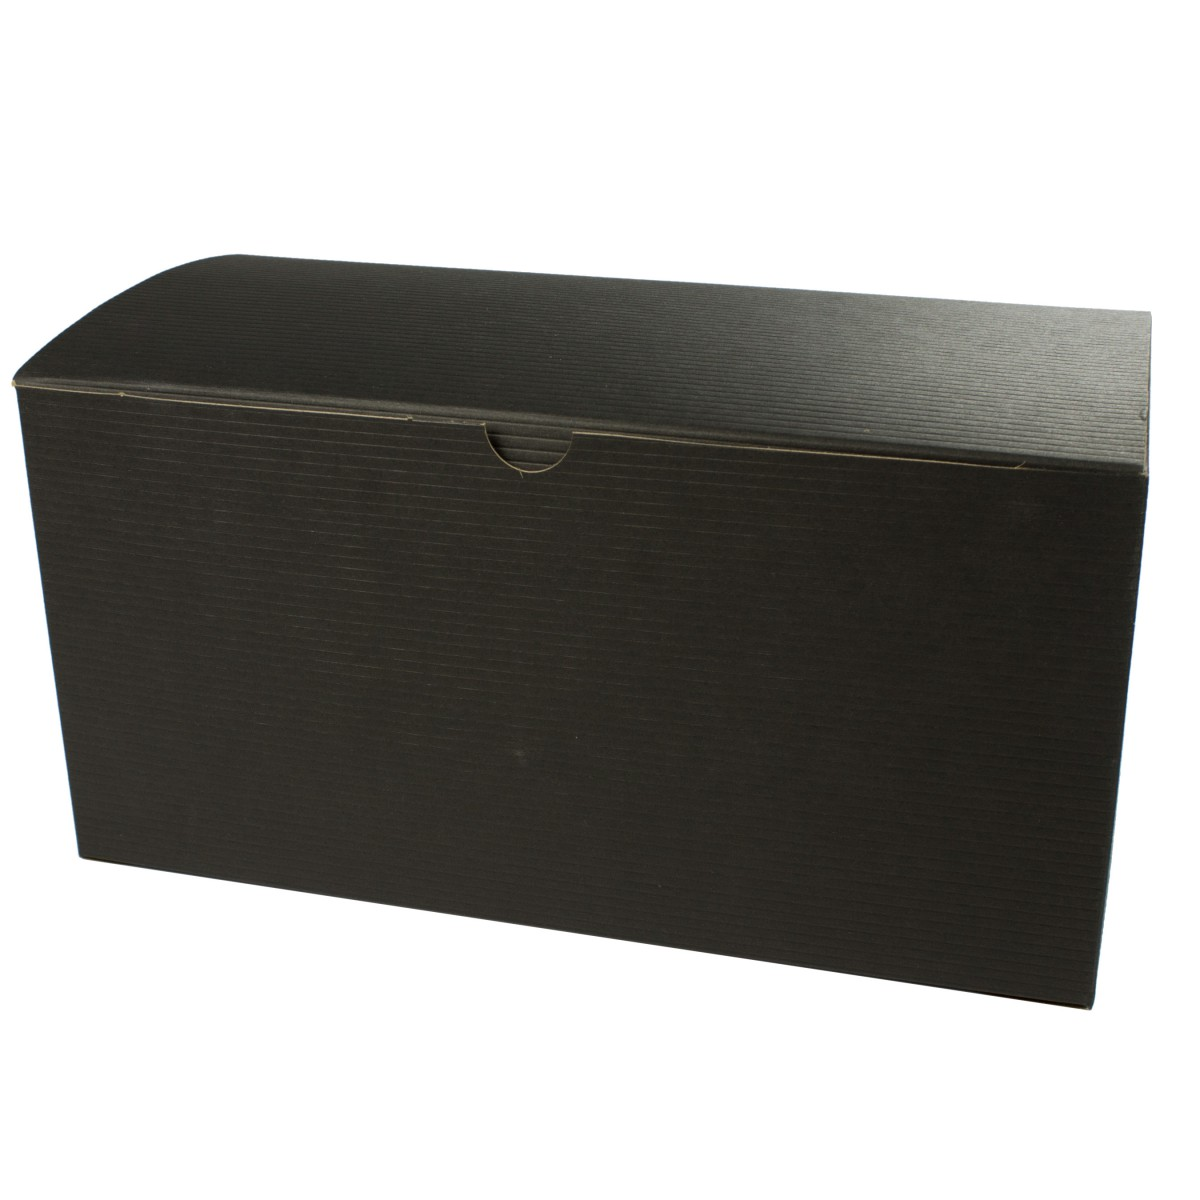 10 x 5 x 4 BLACK PINSTRIPE TUCK-TOP GIFT BOXES